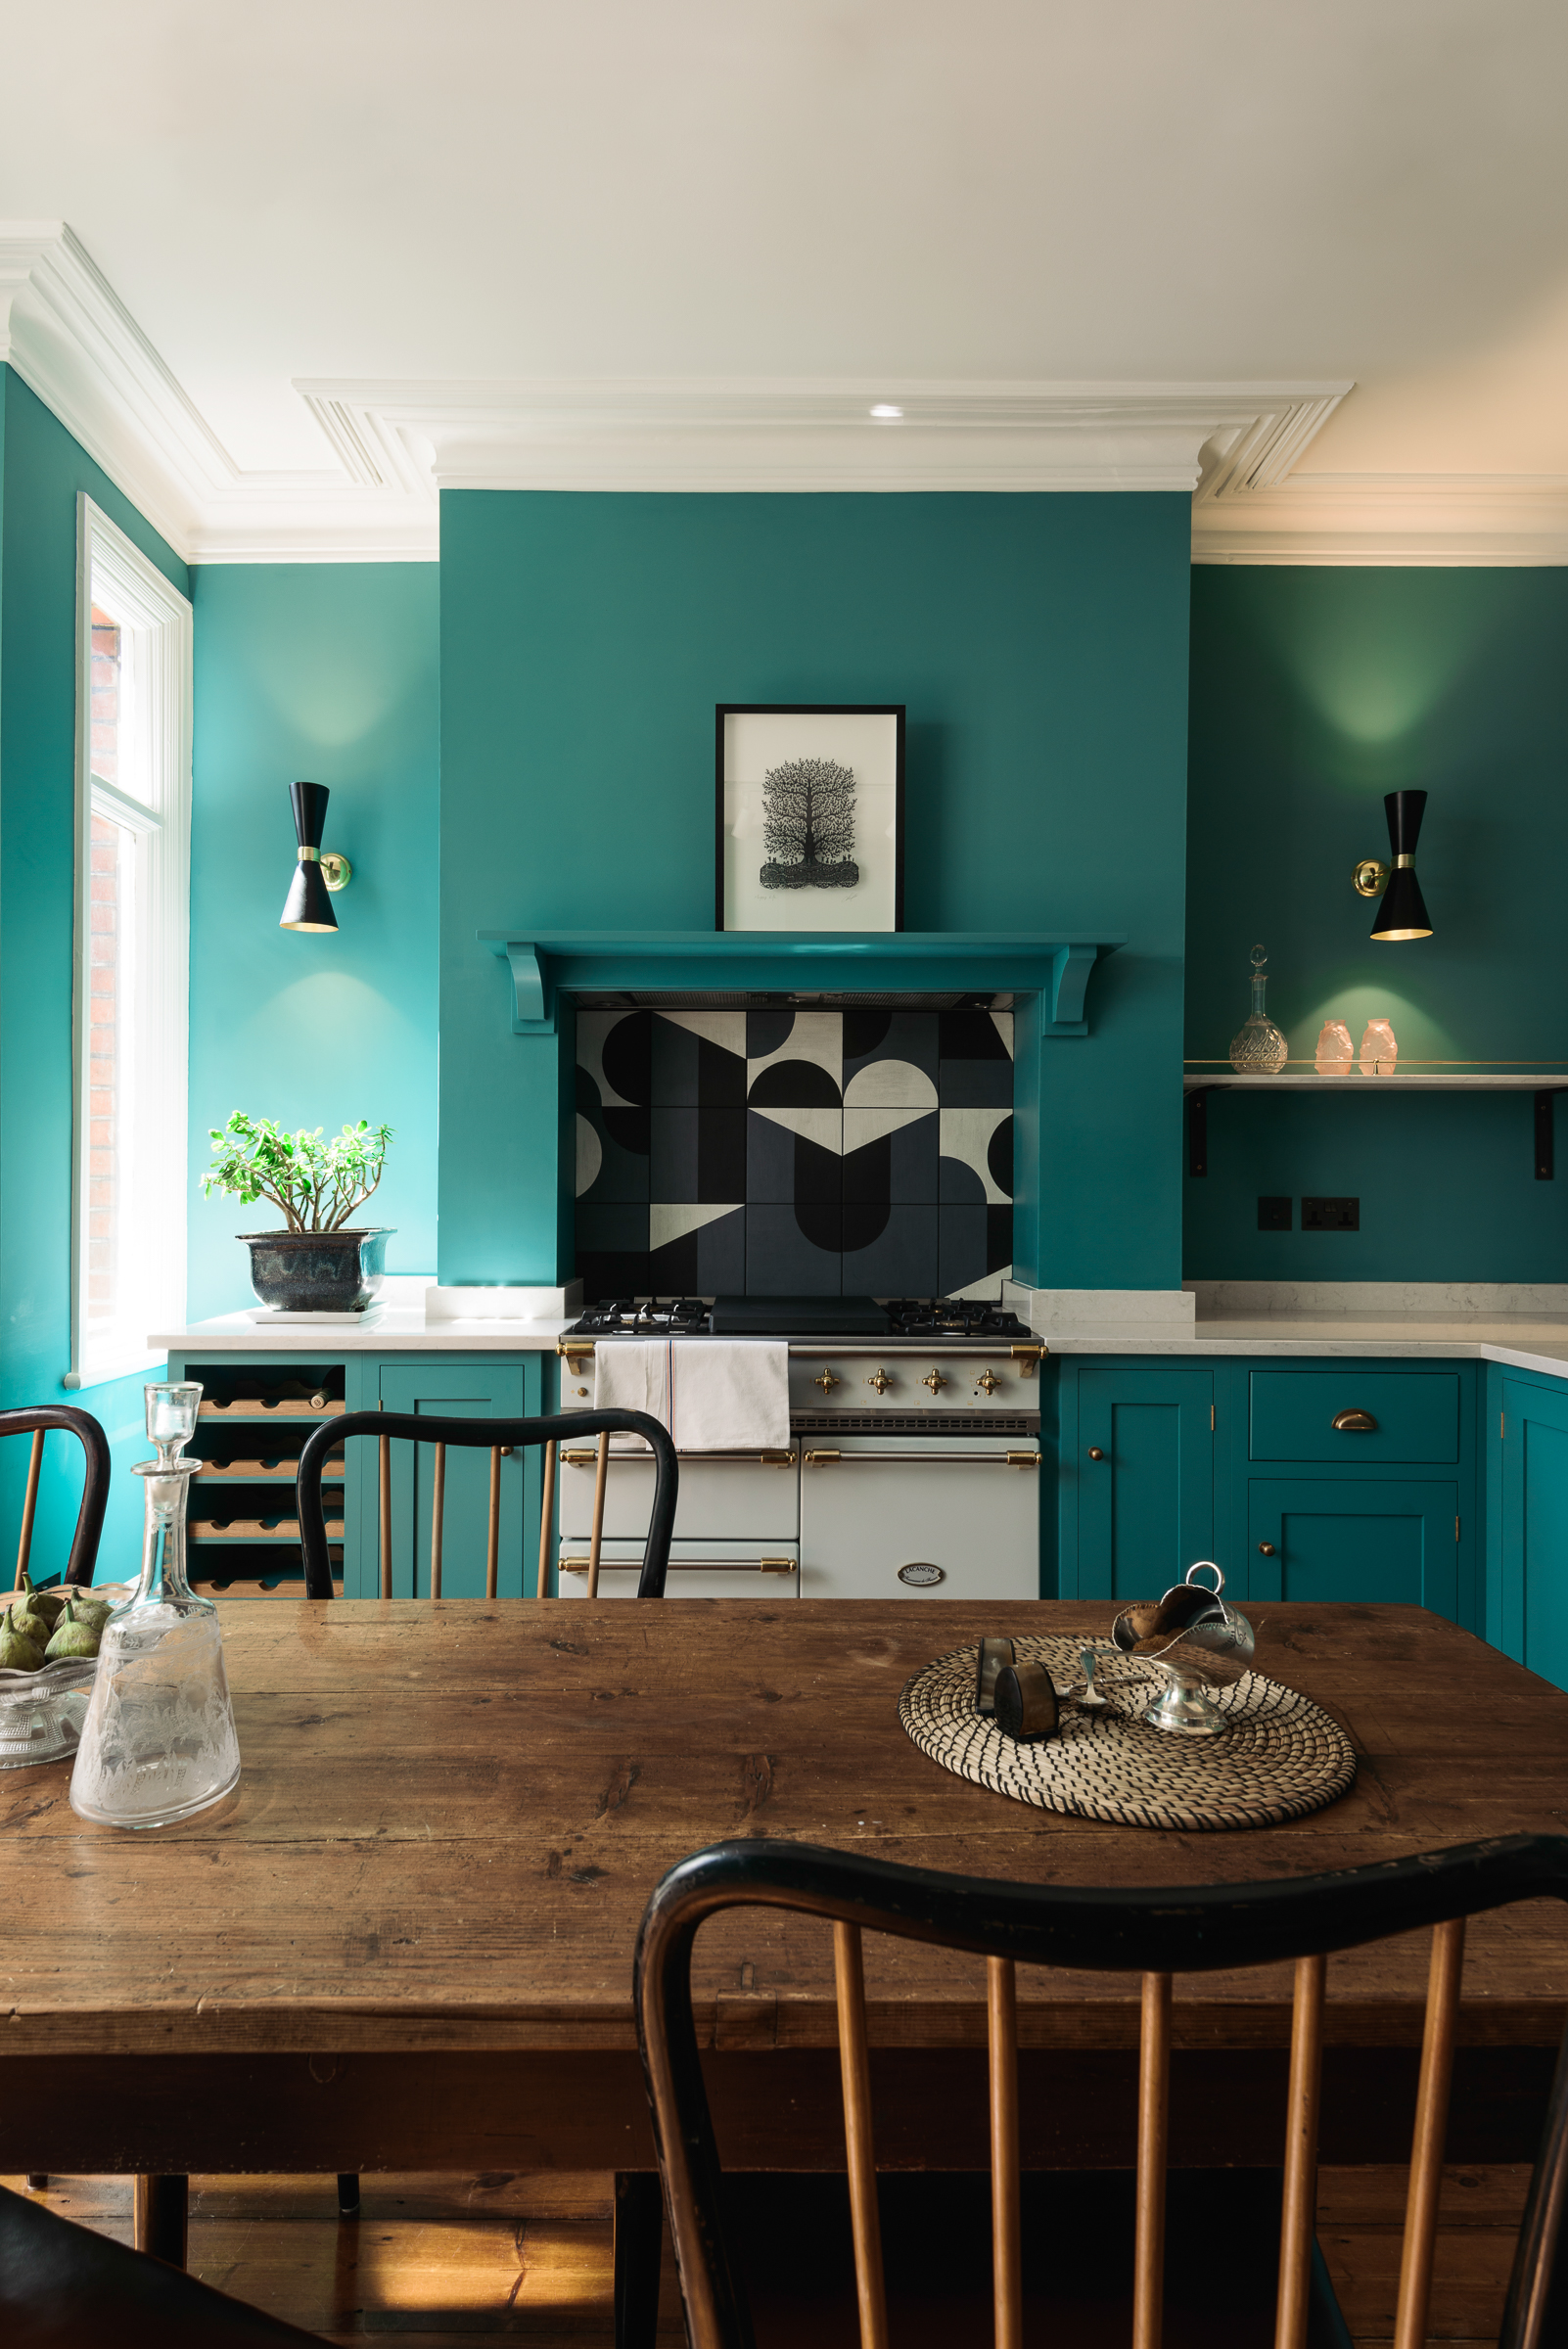 3. The Real Shaker Kitchen by deVOL.jpg